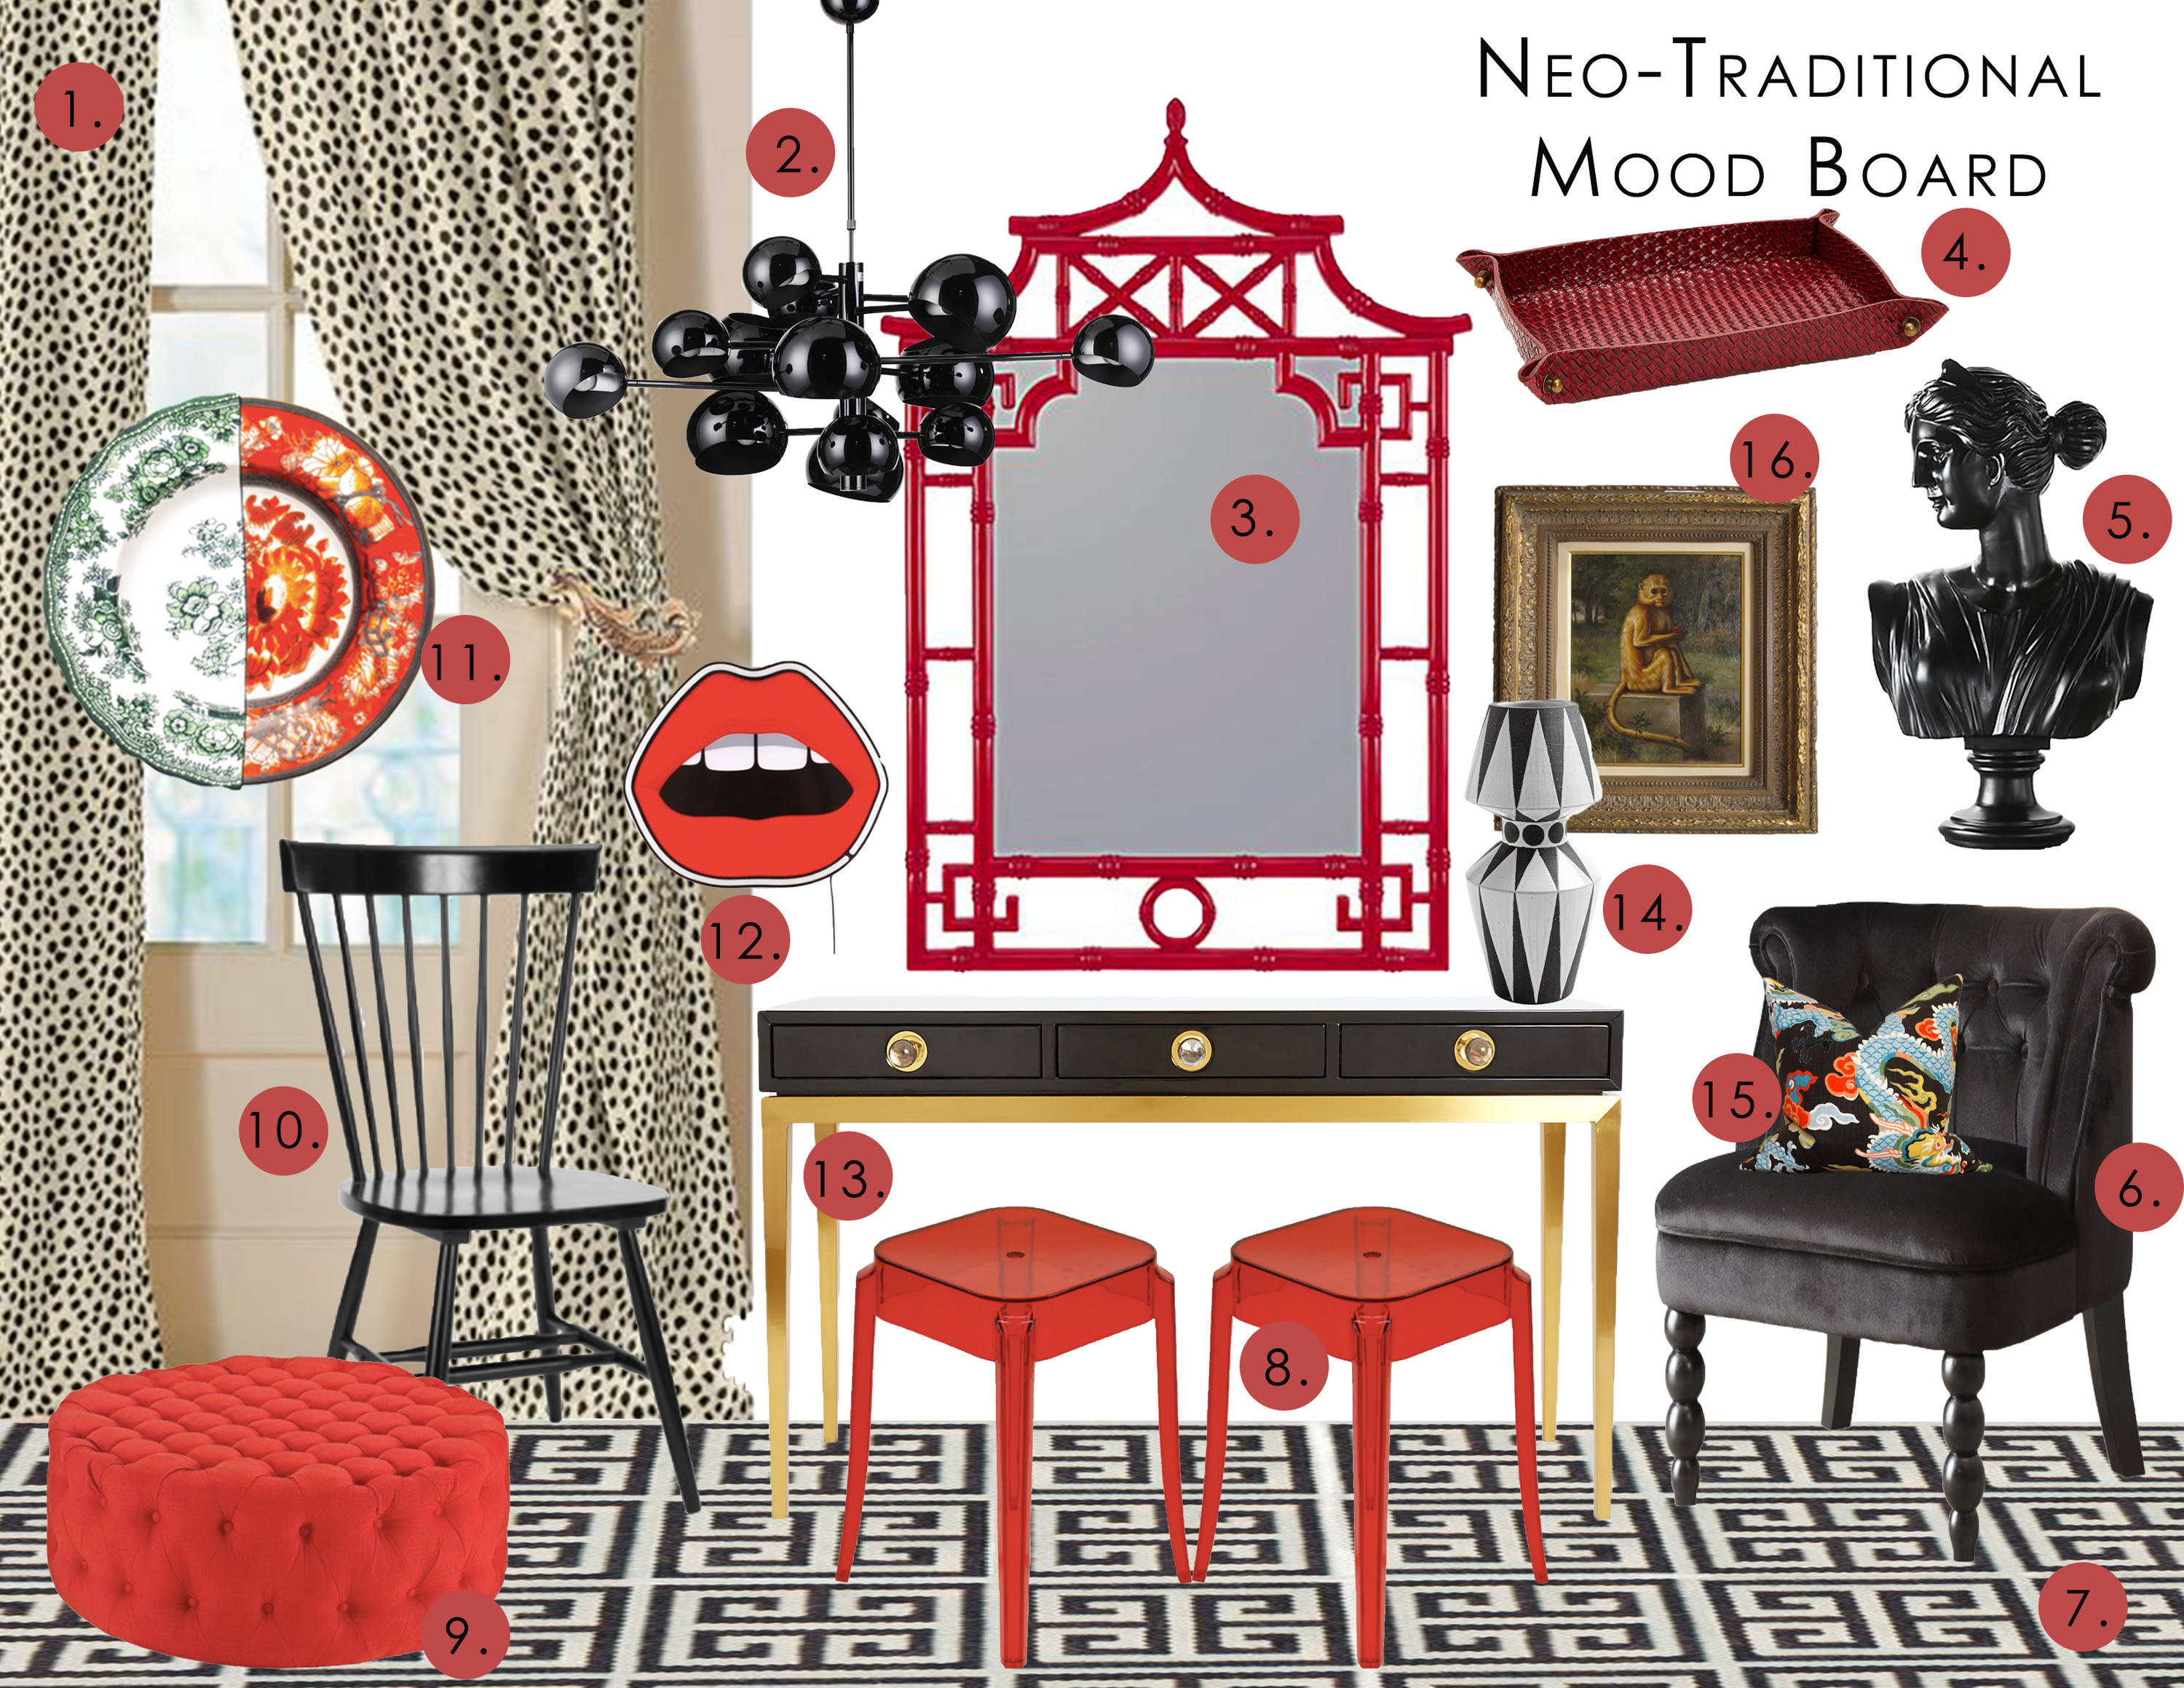 an interior design mood board in the neo-traditional style with a red and black theme